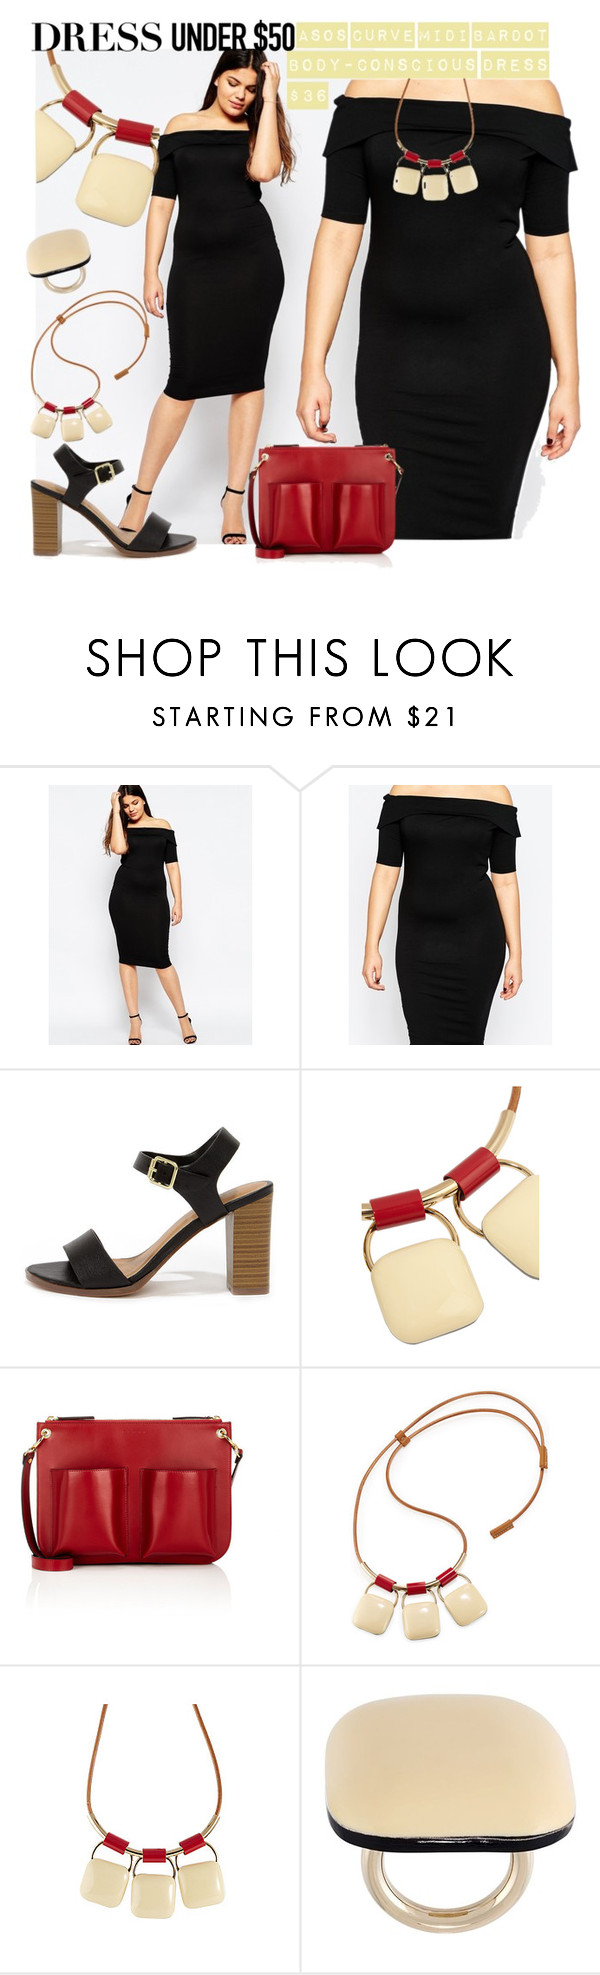 """Plus Size LBD only $36"" by alejandra-soraires on Polyvore featuring ASOS Curve, My Delicious, Marni y Dressunder50"